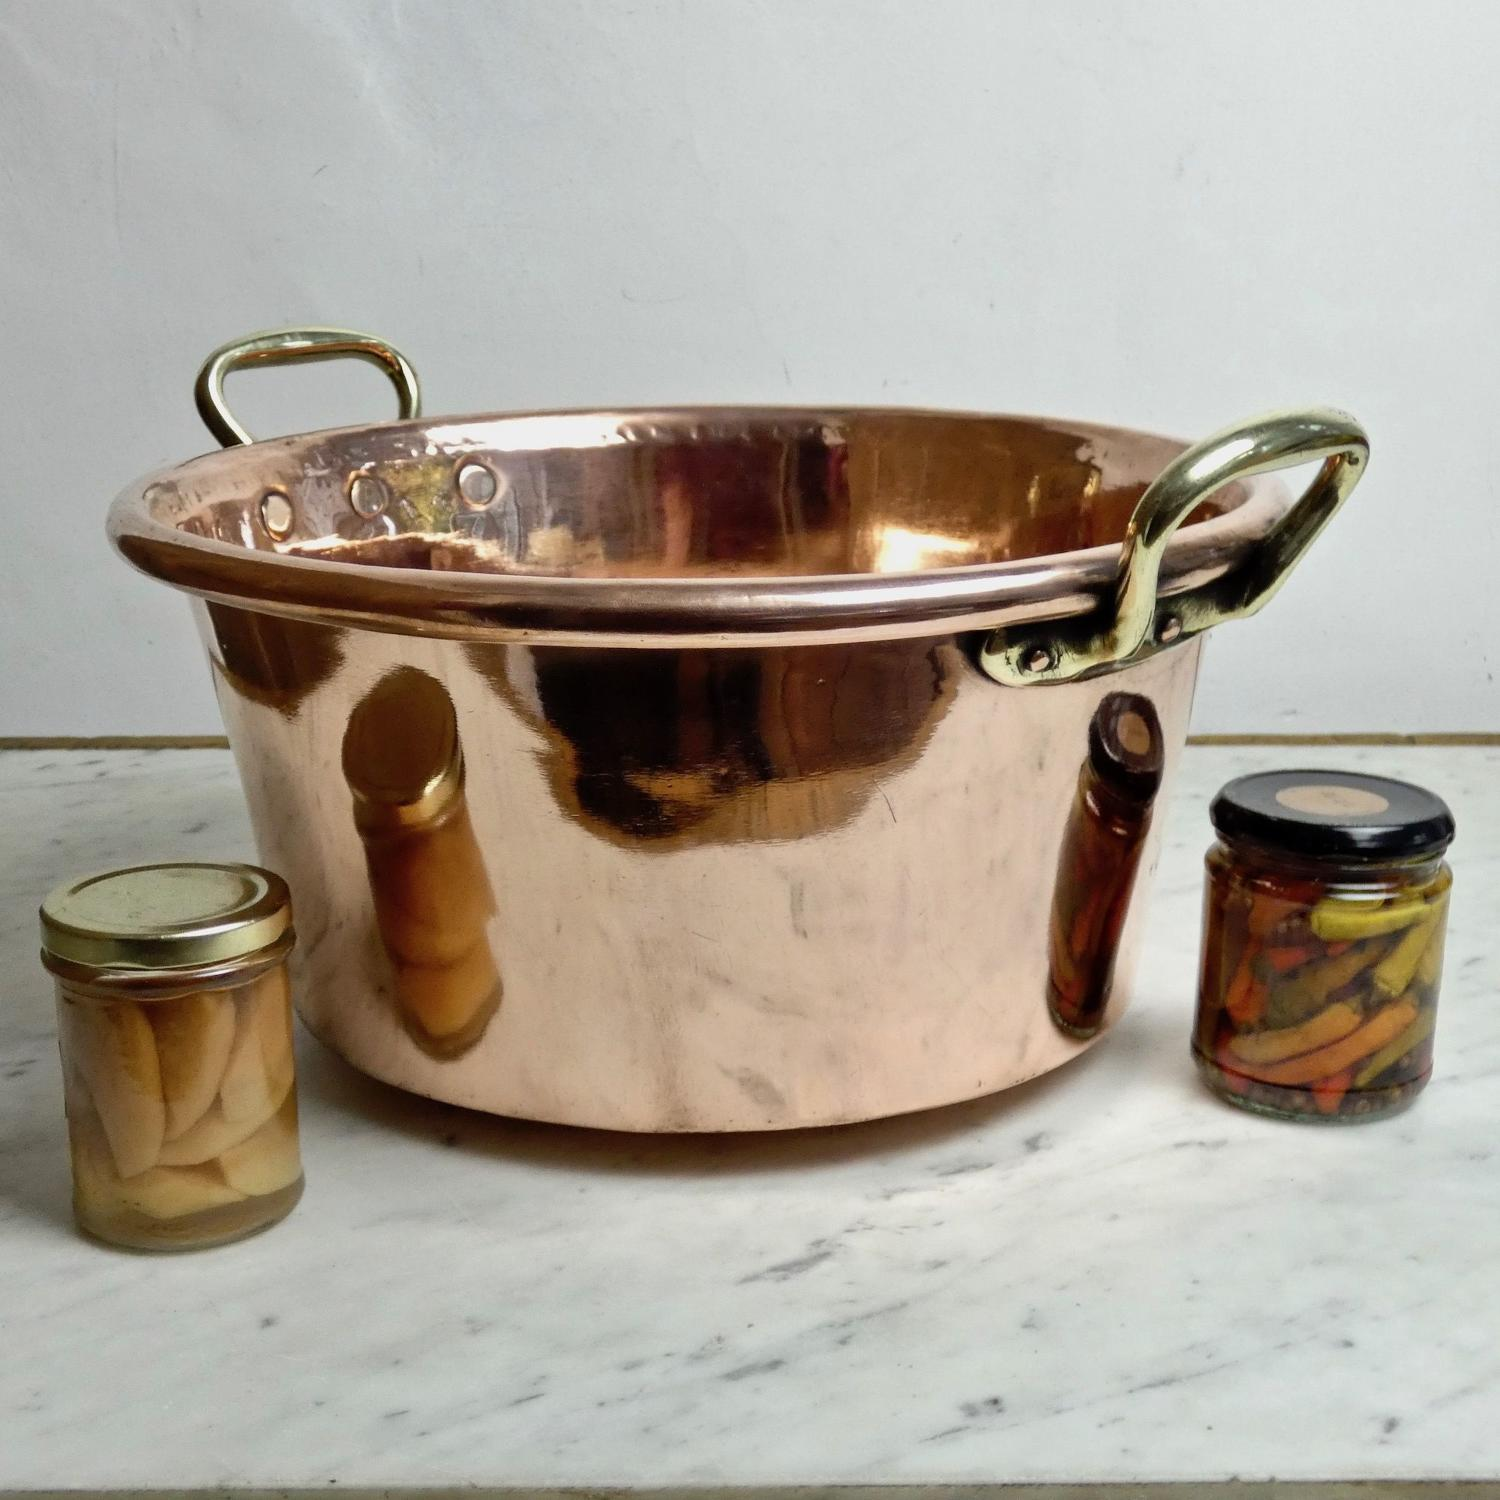 Deep, French copper preserve pan